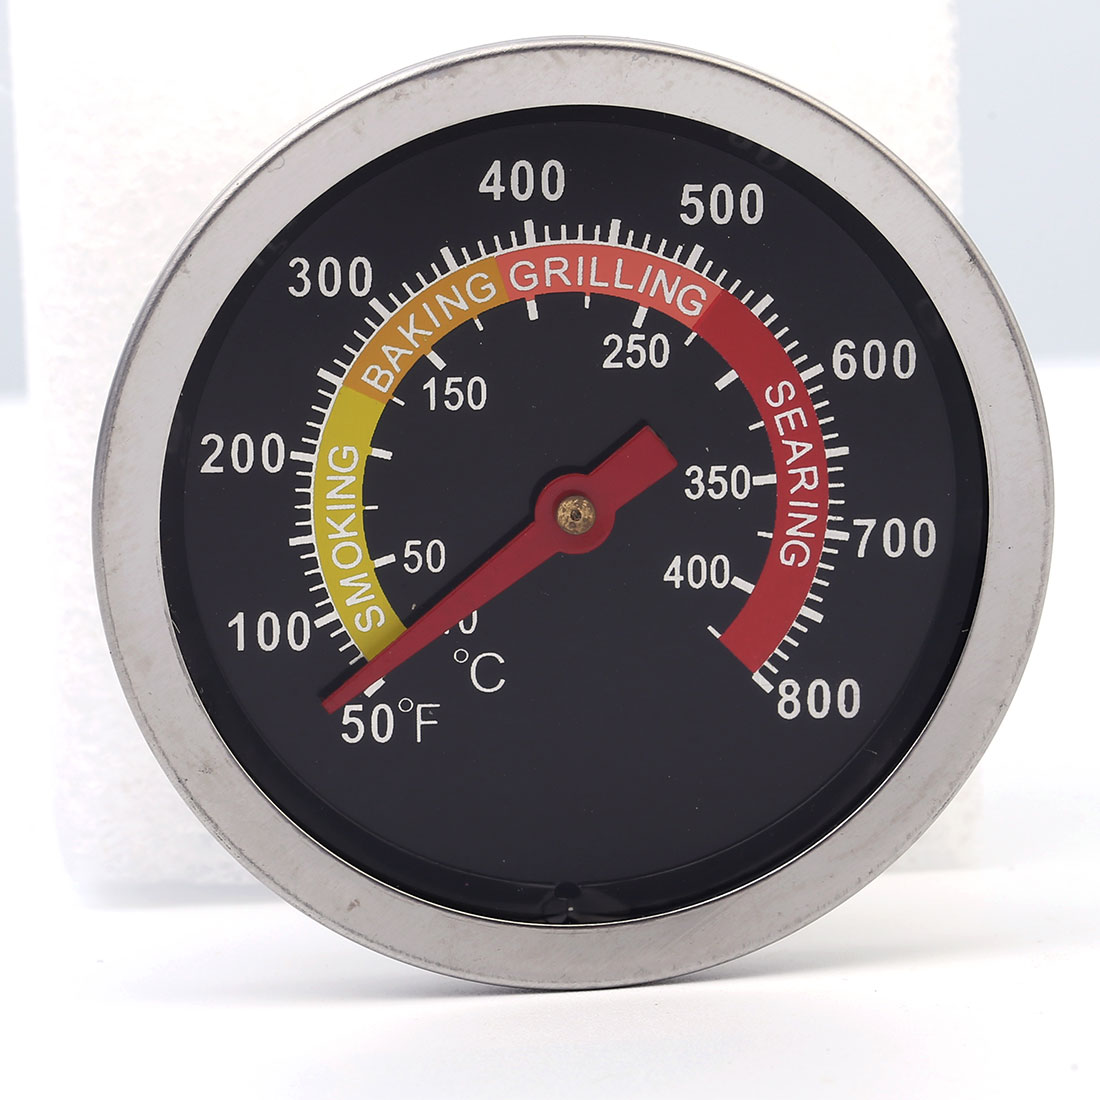 50-400C Cooking Tools Stainless Steel BBQ Smoker Grill Thermometer Temperature Gauge Oven Cooker Thermometer Gauge